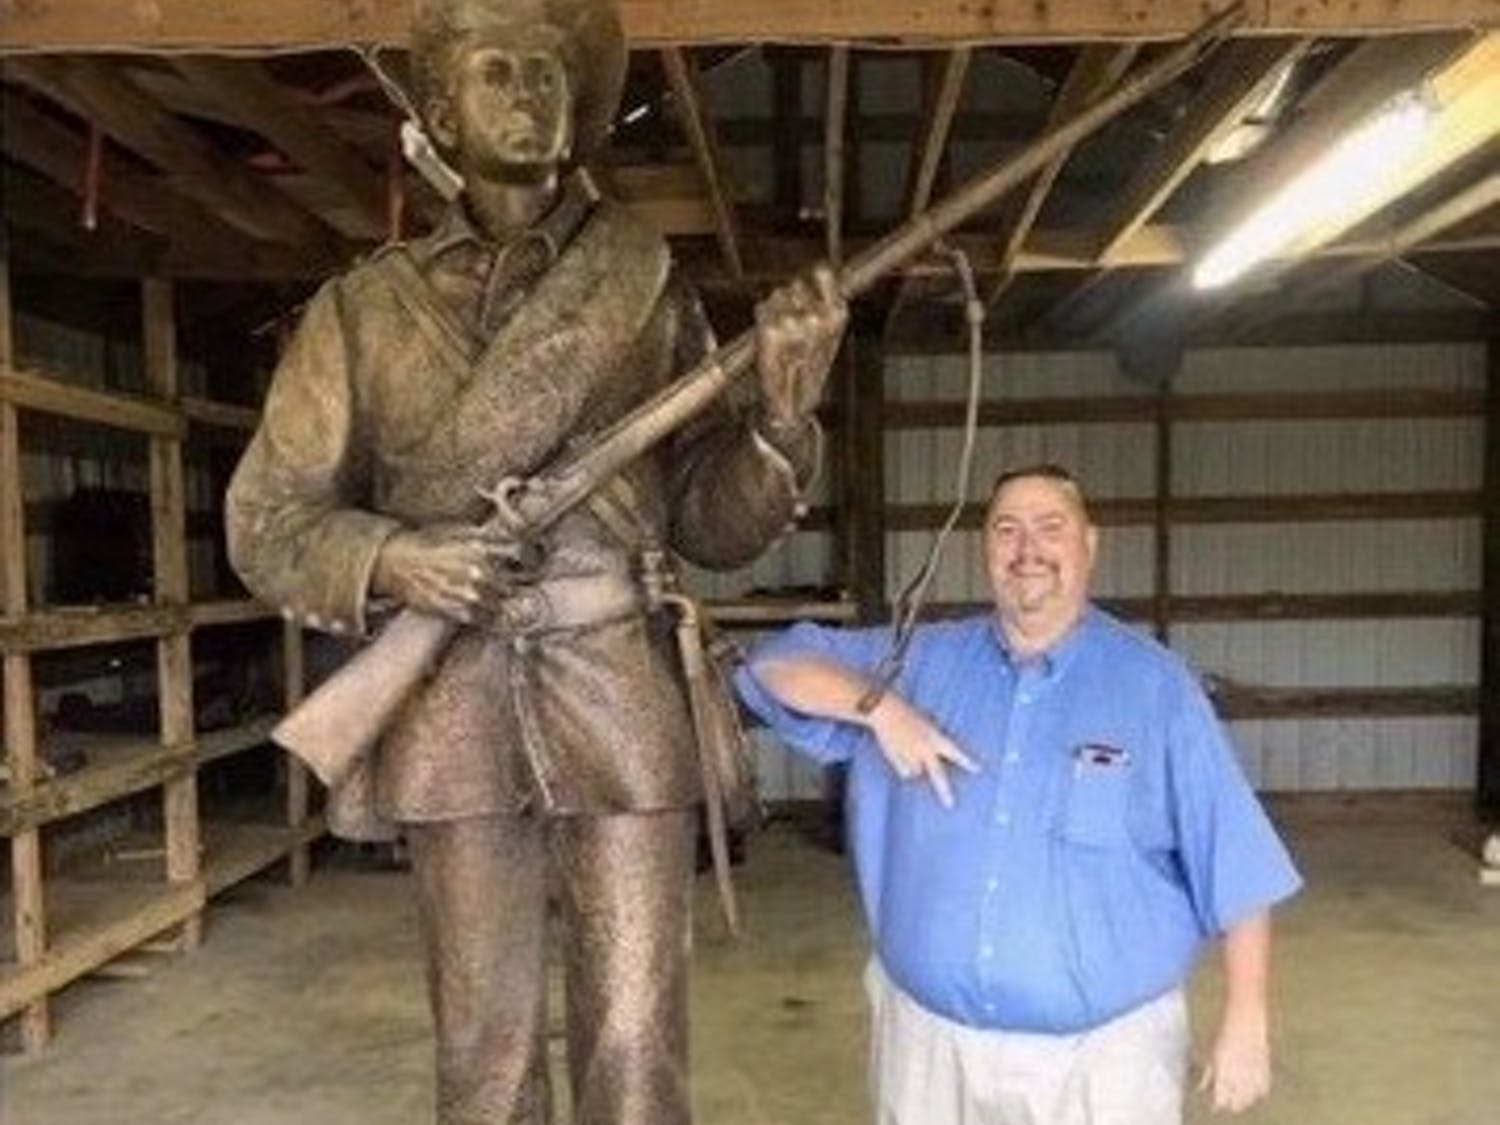 """Kevin Stone, commander of the Sons of Confederate Veterans' North Carolina chapter, poses next to Silent Sam after suing and immediately settling with the UNC System and Board of Governors, a deal that gave the group possession of the Confederate monument and $2.5 million in UNC System money for its """"preservation and benefit."""" Photo courtesy of SCV members."""